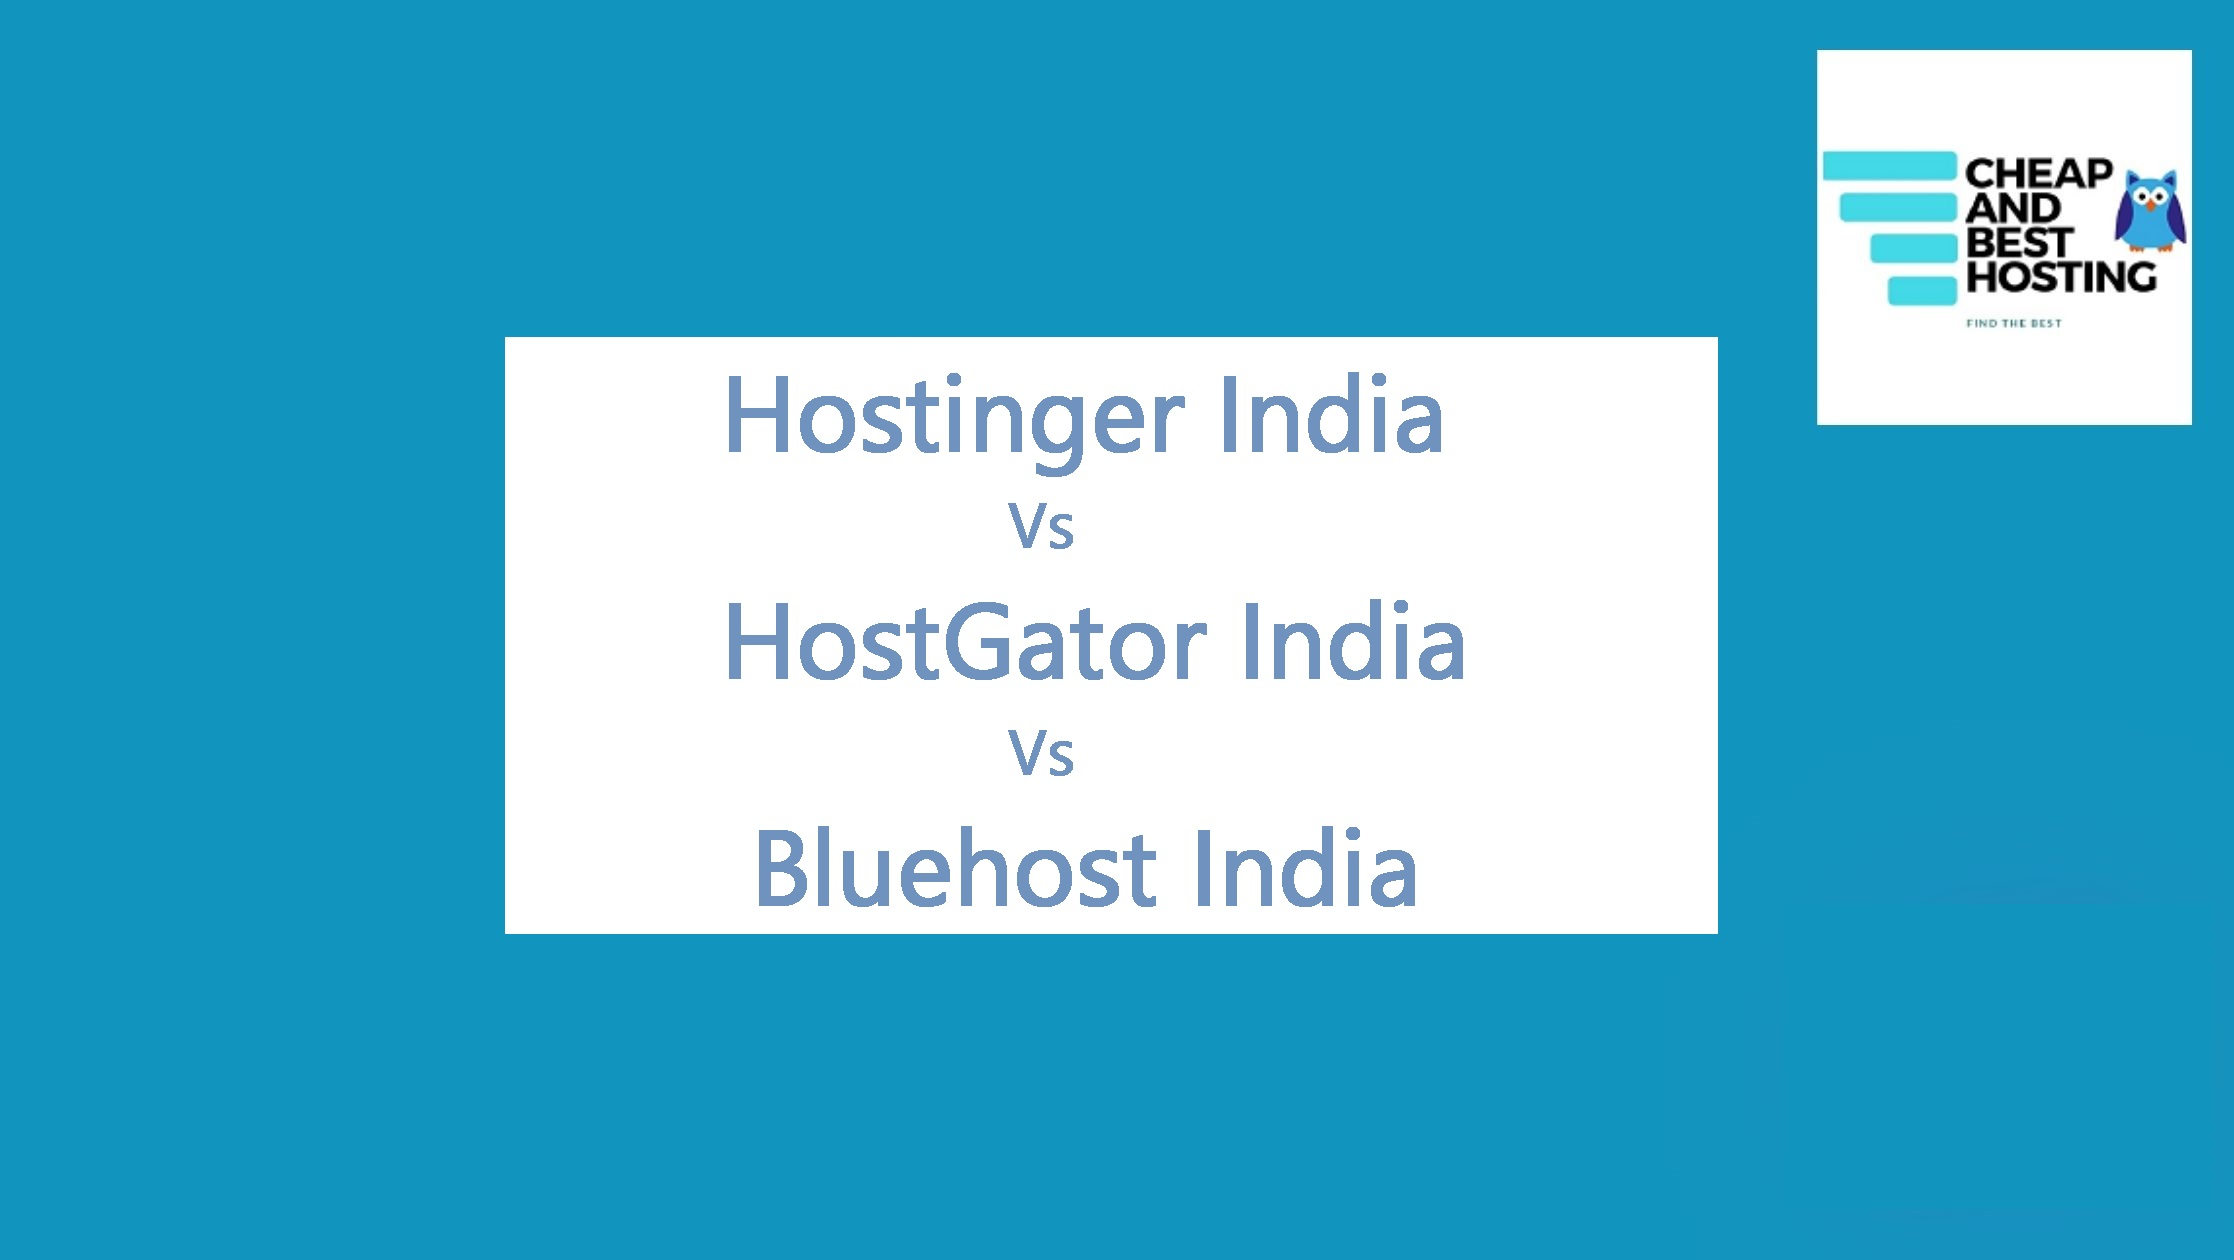 hostinger india vs hostgator india vs bluehost india